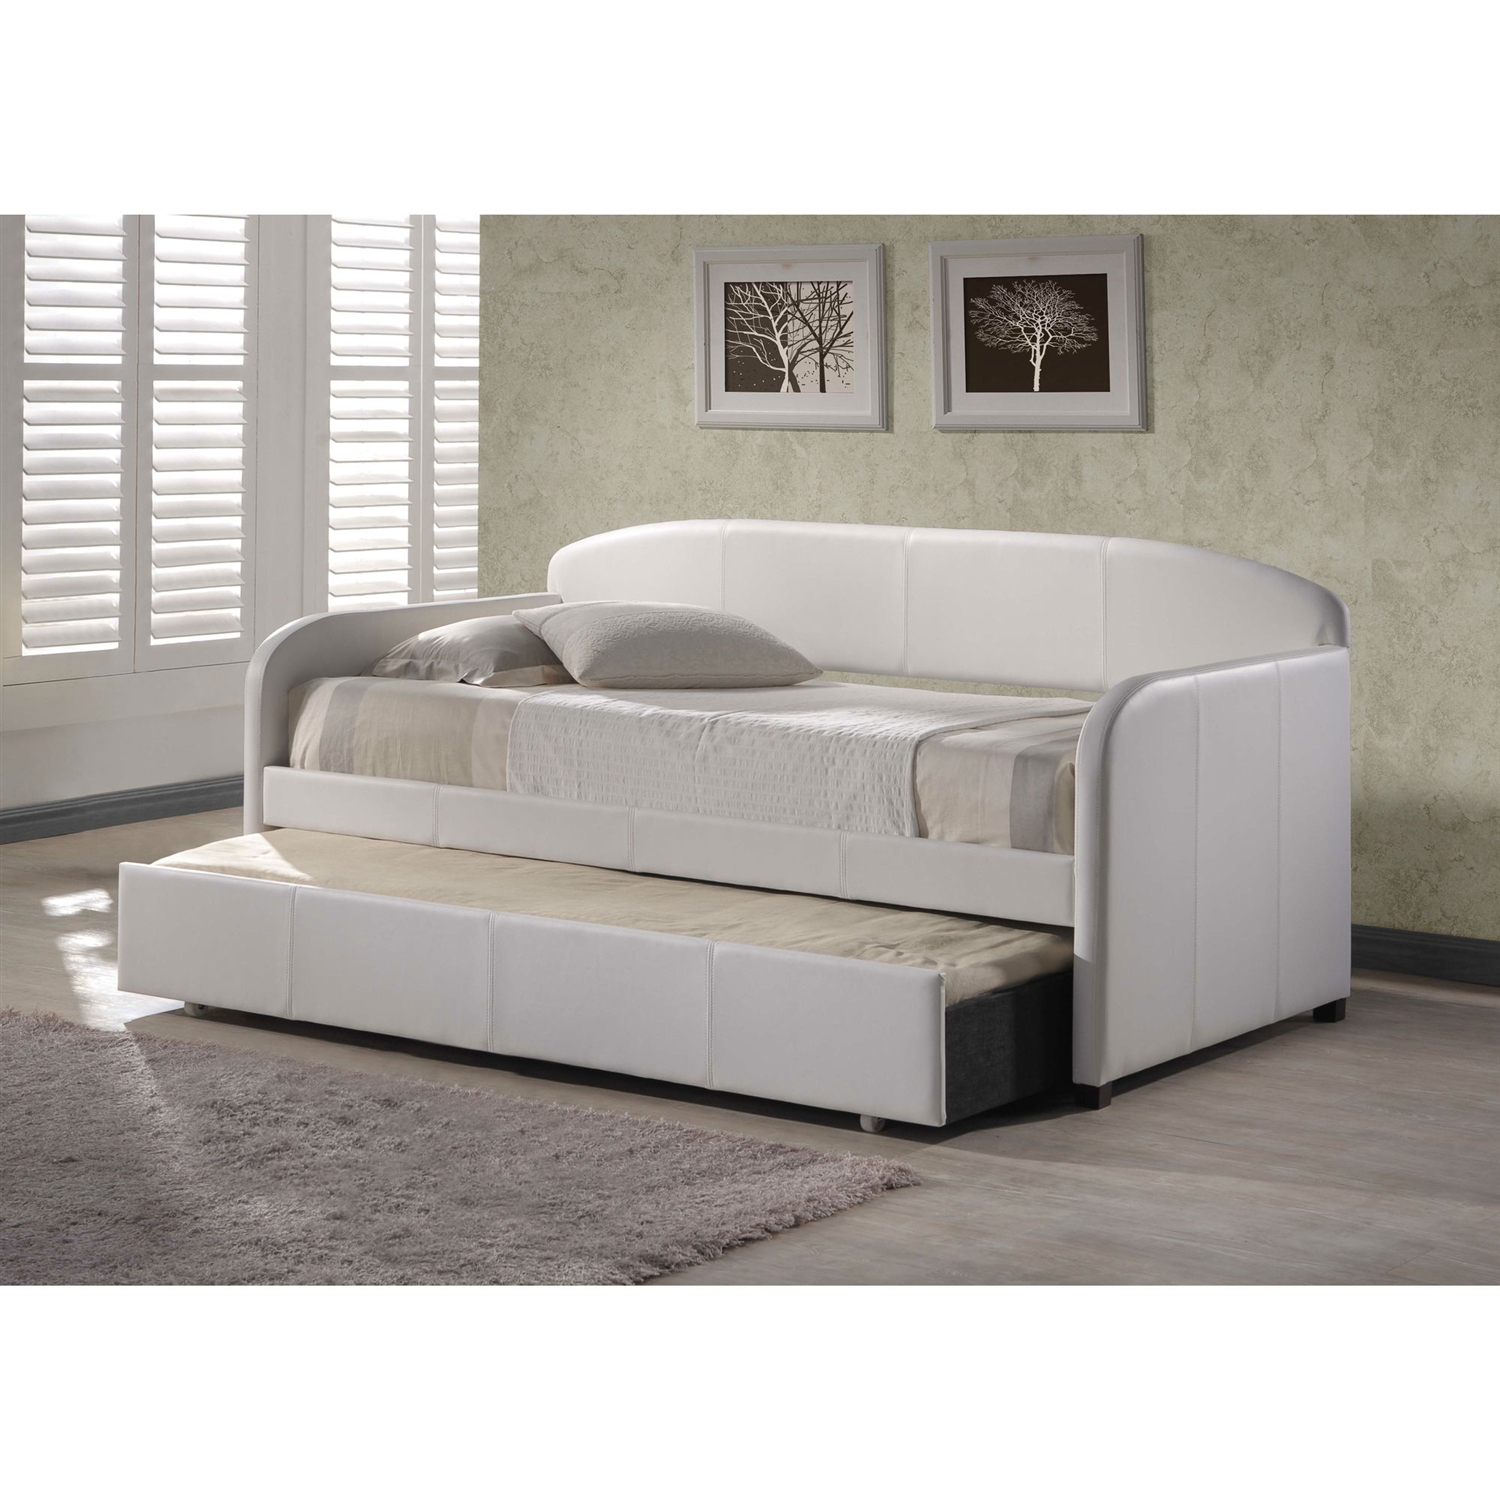 CreativeWorks Home Decor DAYBEDS 2